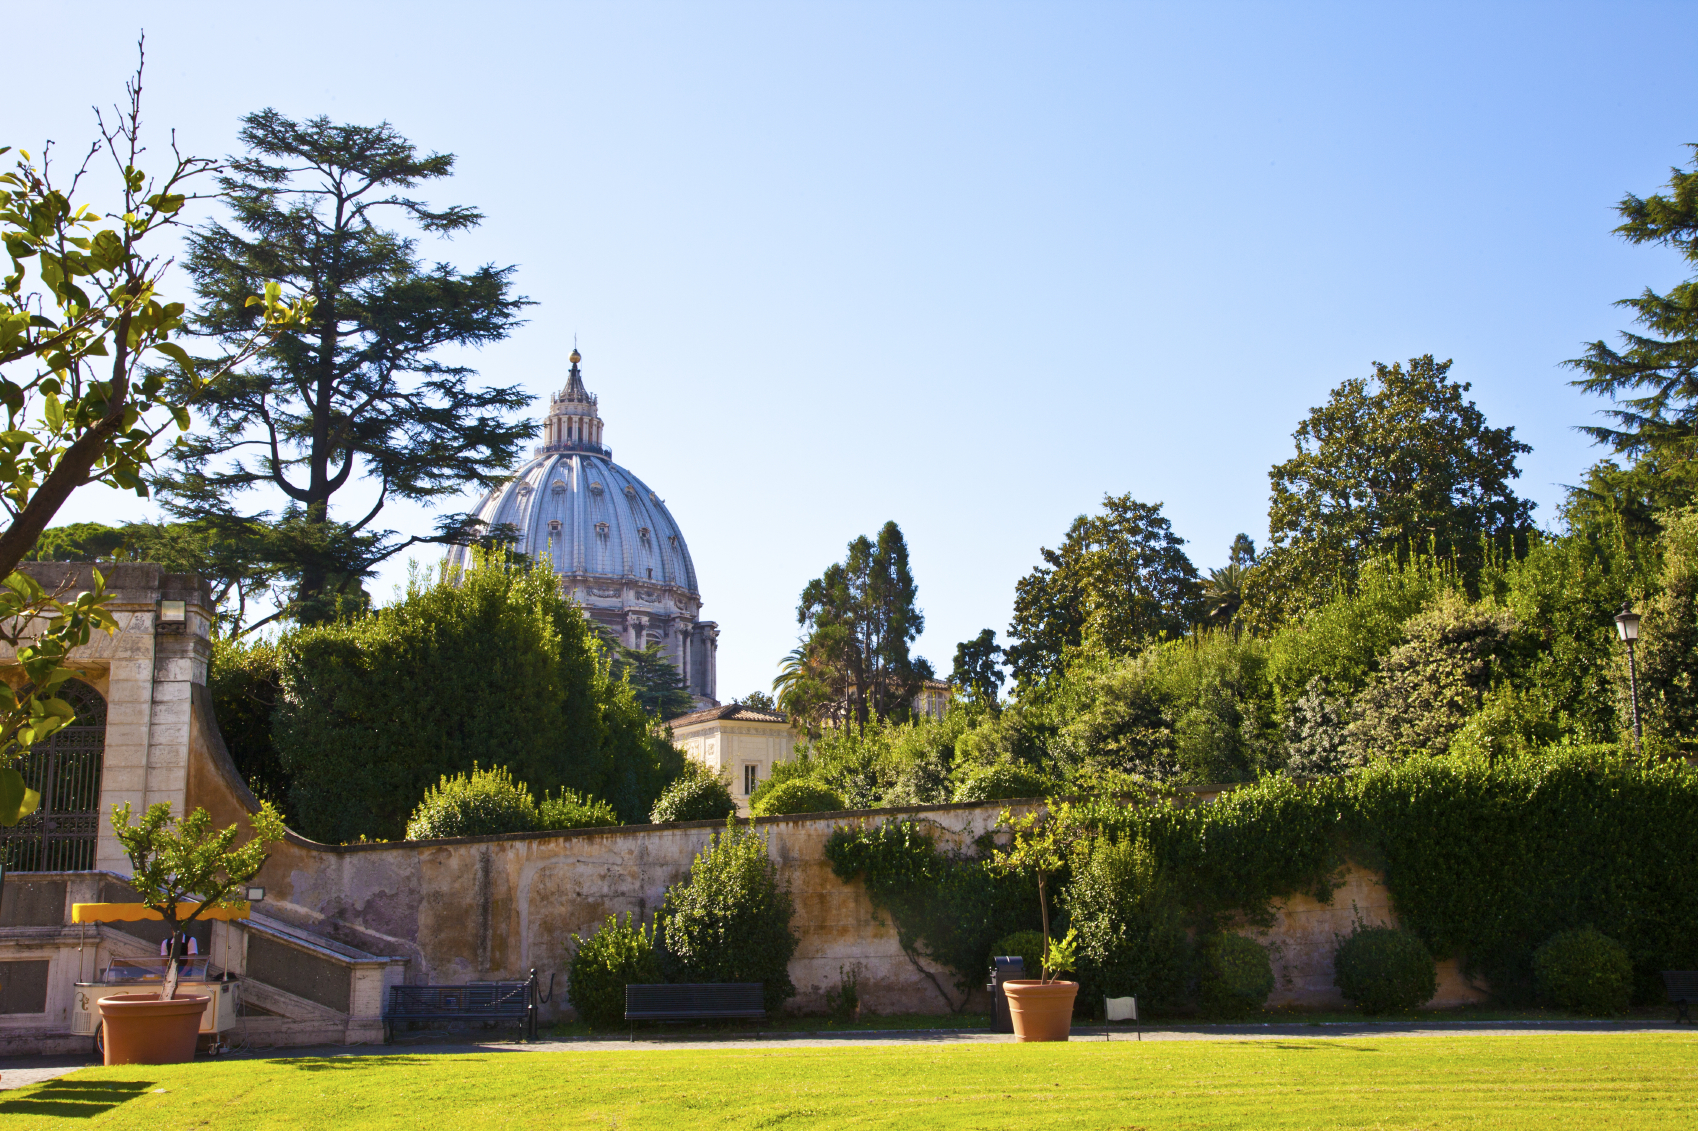 View at Saint Peter church from Vatican garden in Rome, Italy